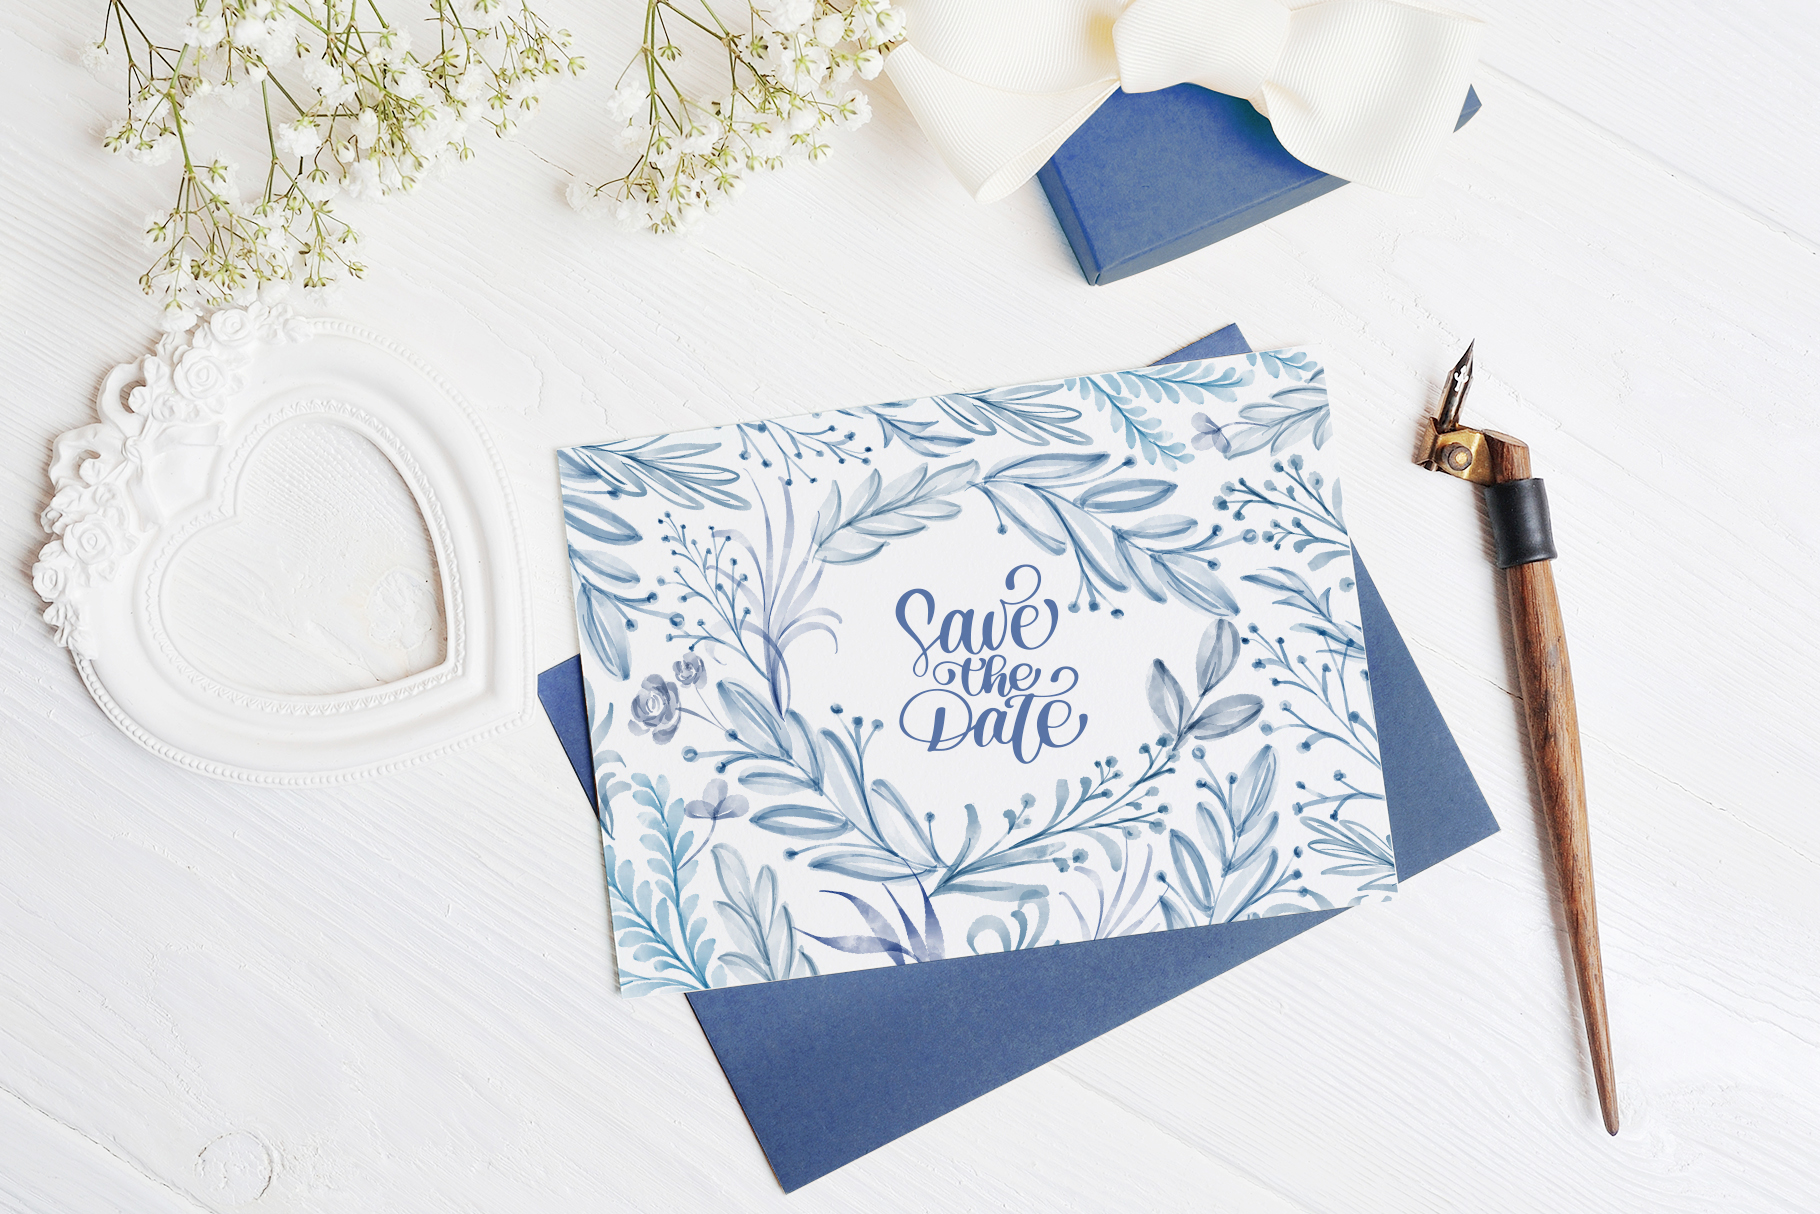 Watercolor Leaves Collection Graphic Item